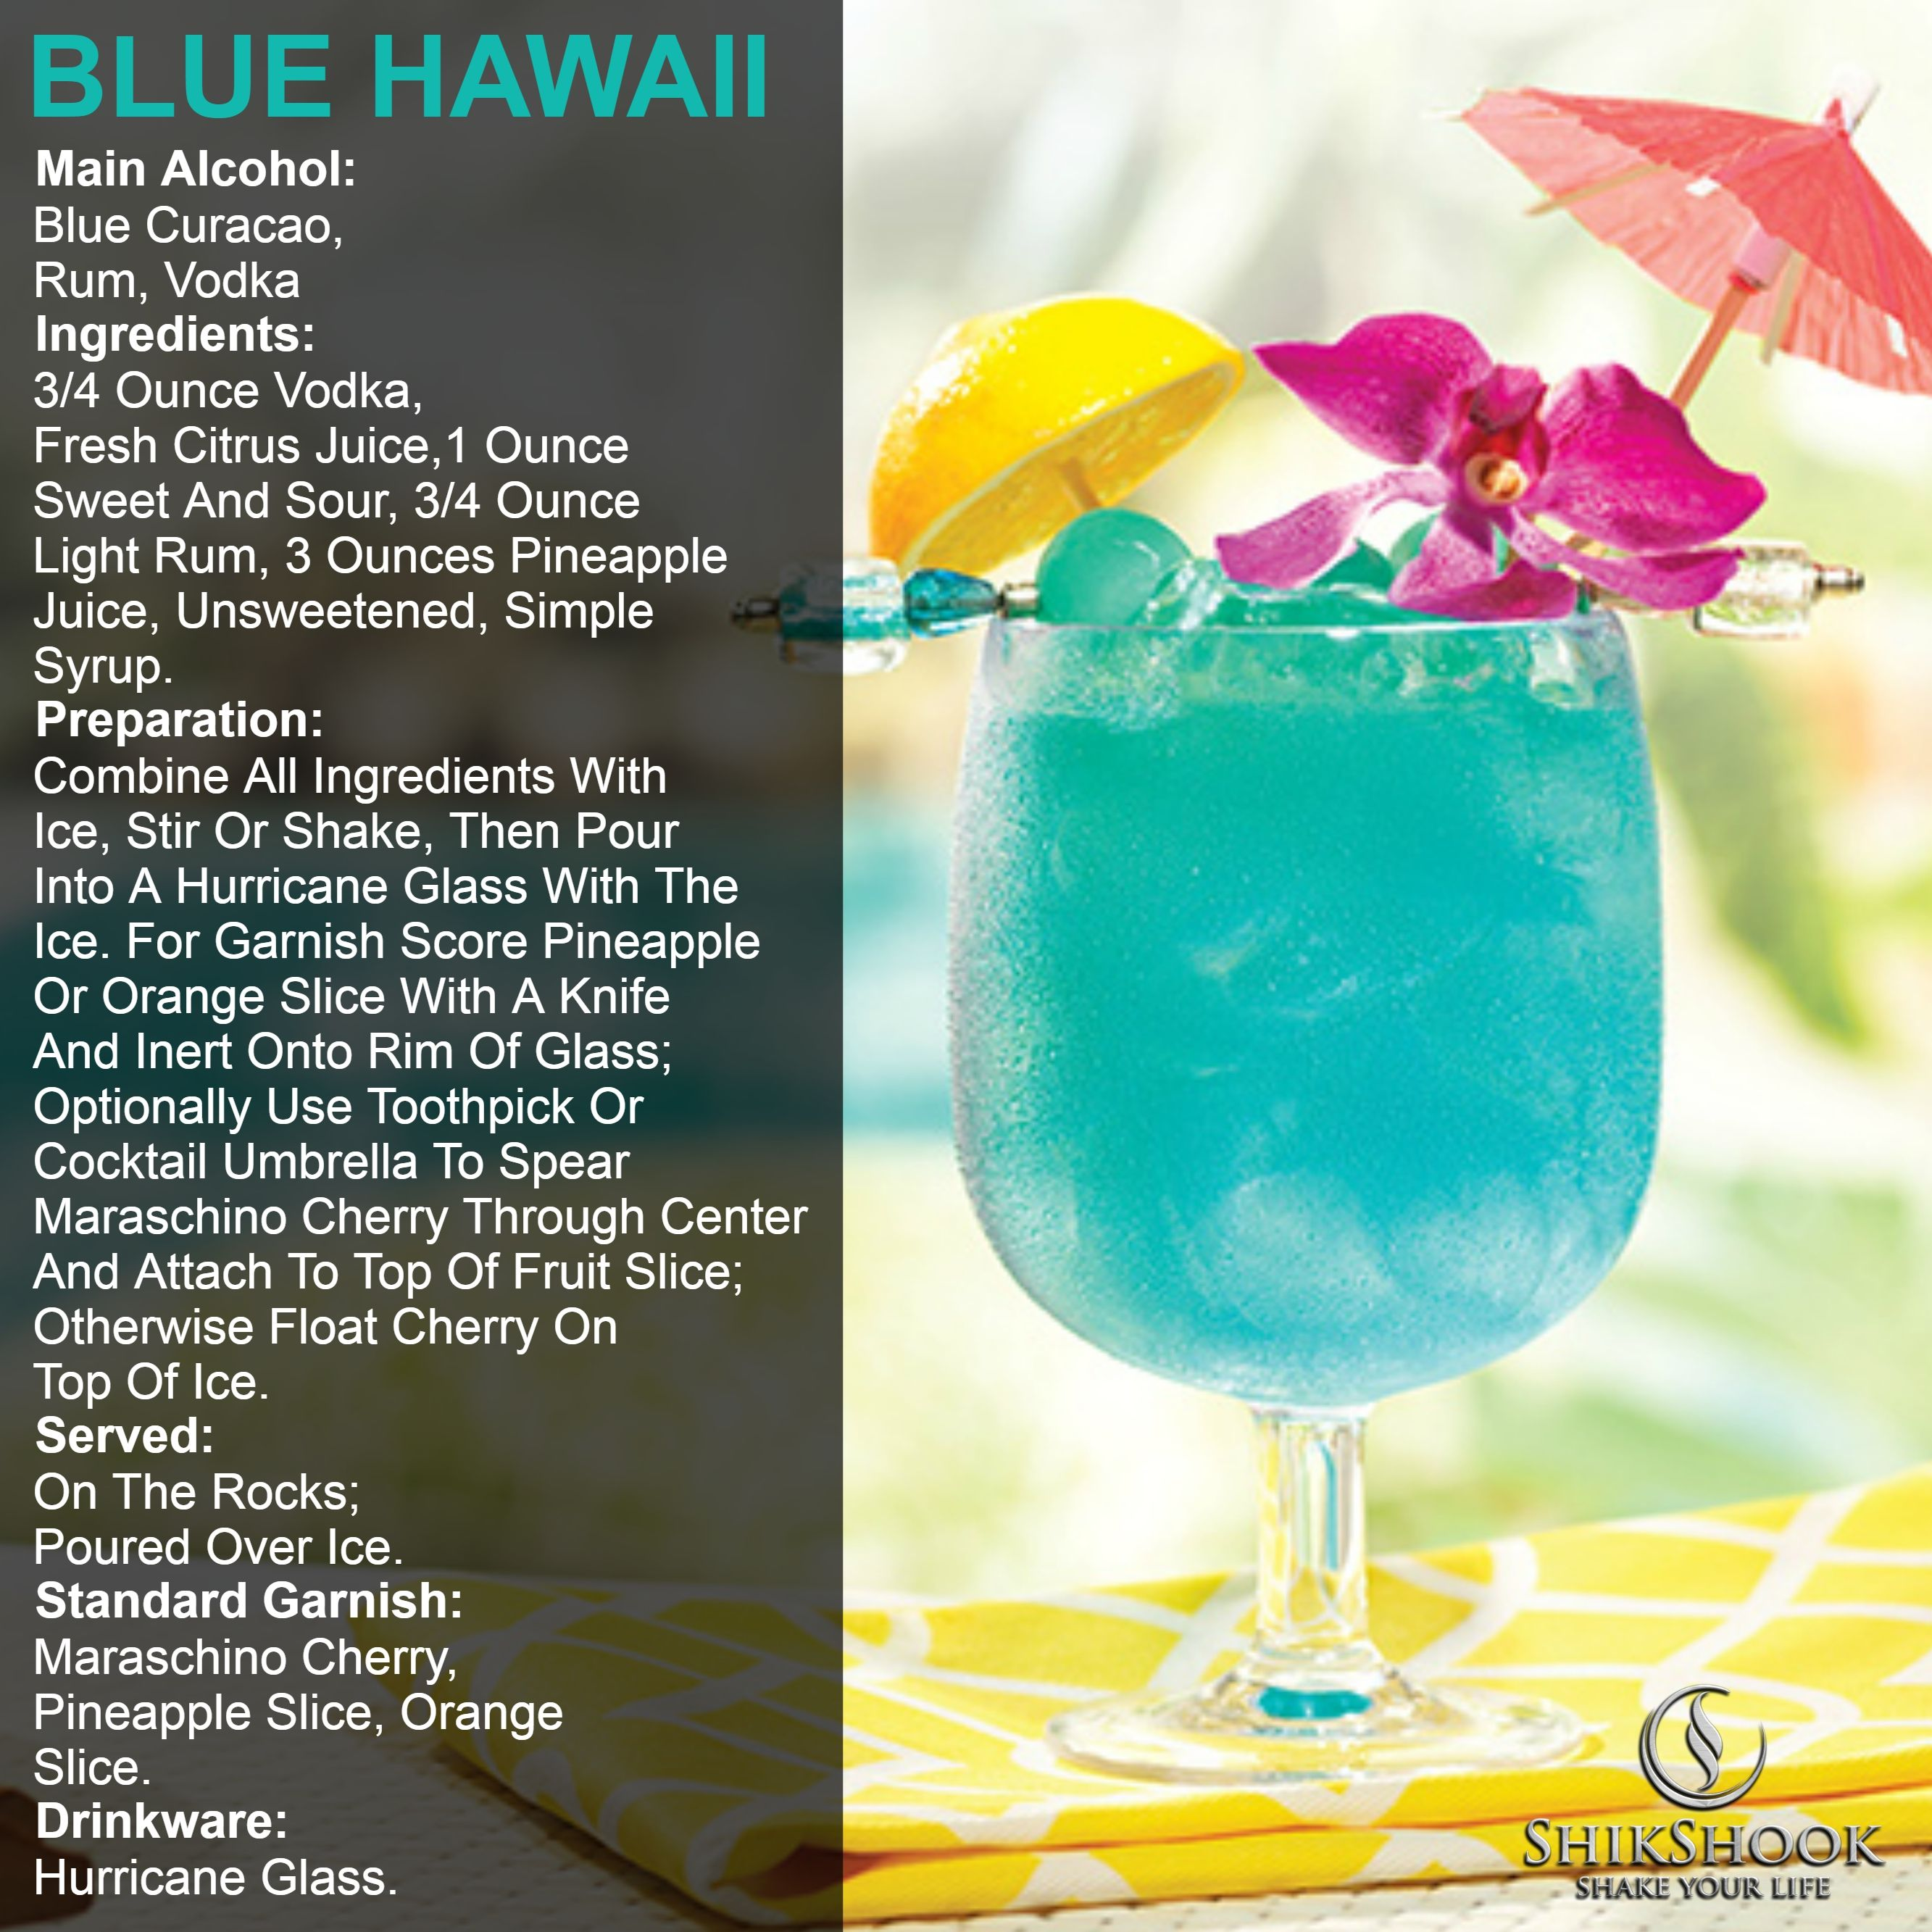 Blue Hawaii Cocktail Main Alcohol Blue Curacao Rum Vodka Ingredients 3 4 Ounce Vodka Pineapple Juice Recipes Cocktail Juice Pineapple Juice